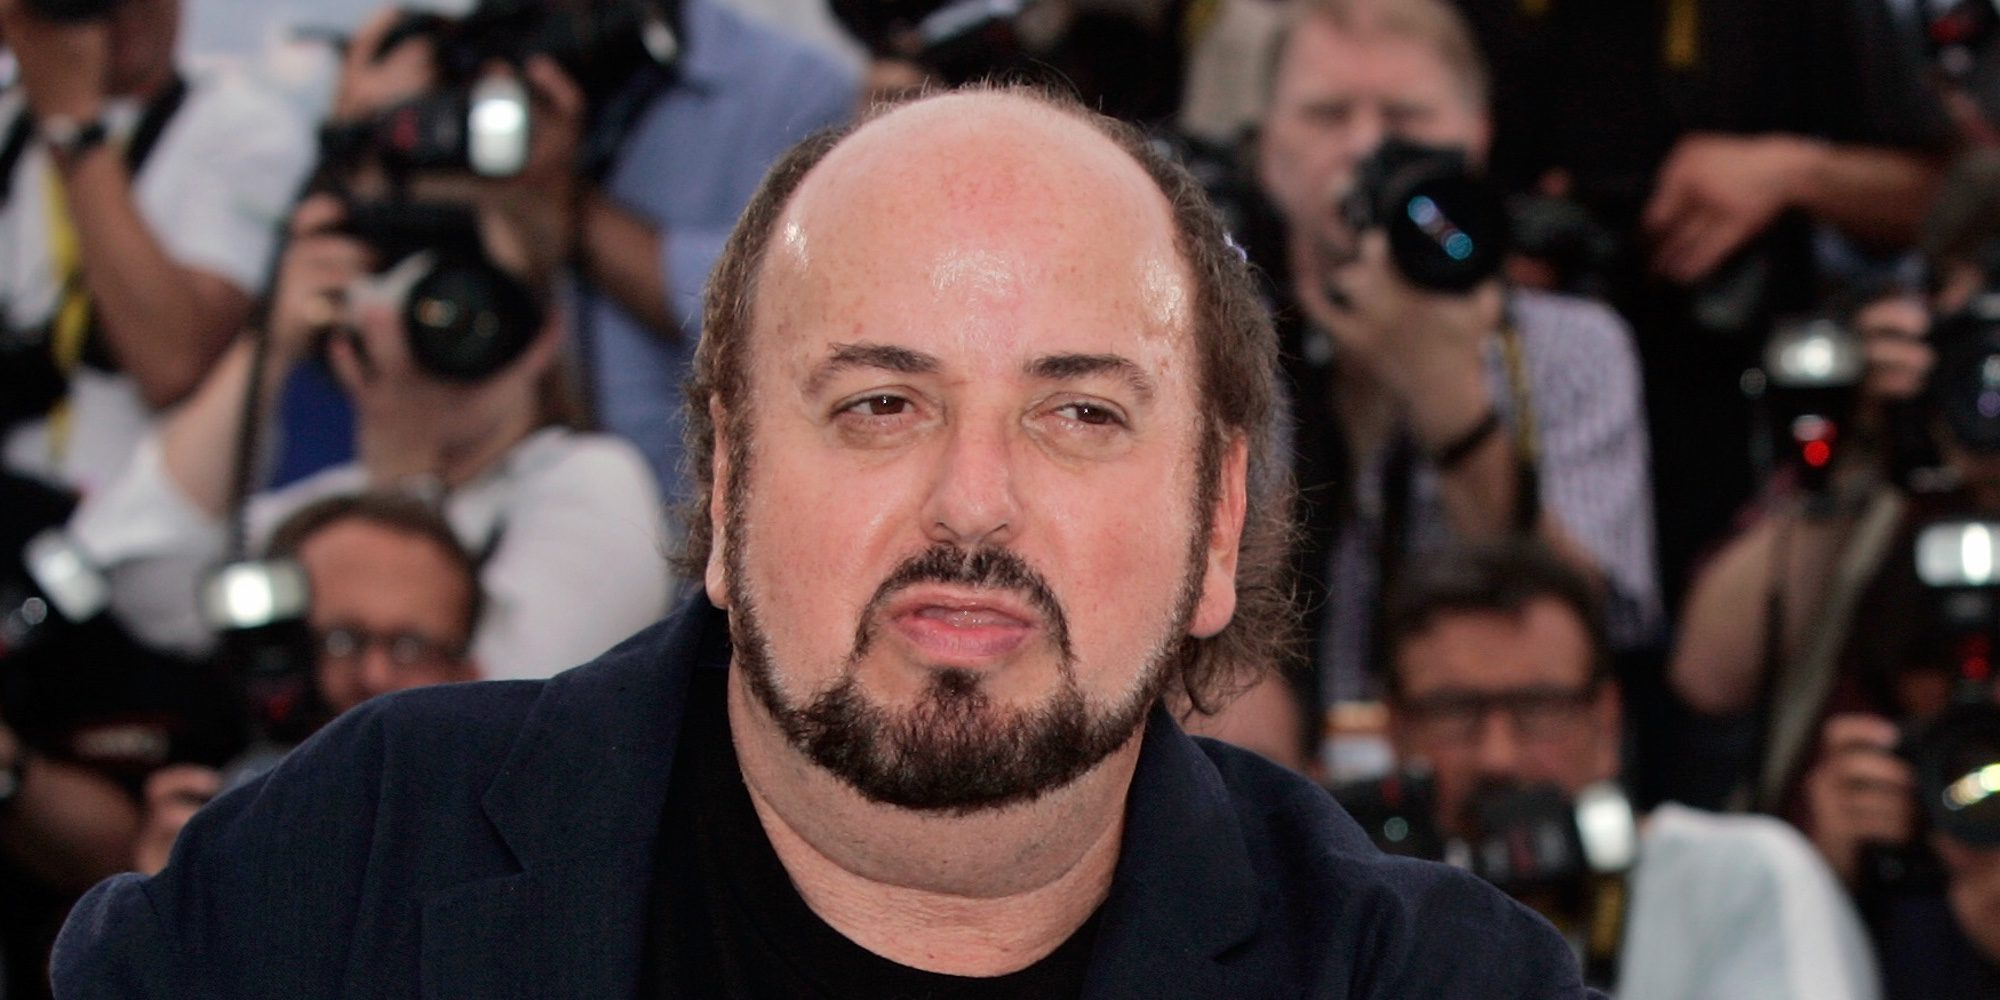 Tras Harvey Weinstein, el director James Toback es acusado por más de 38 mujeres por acoso sexual